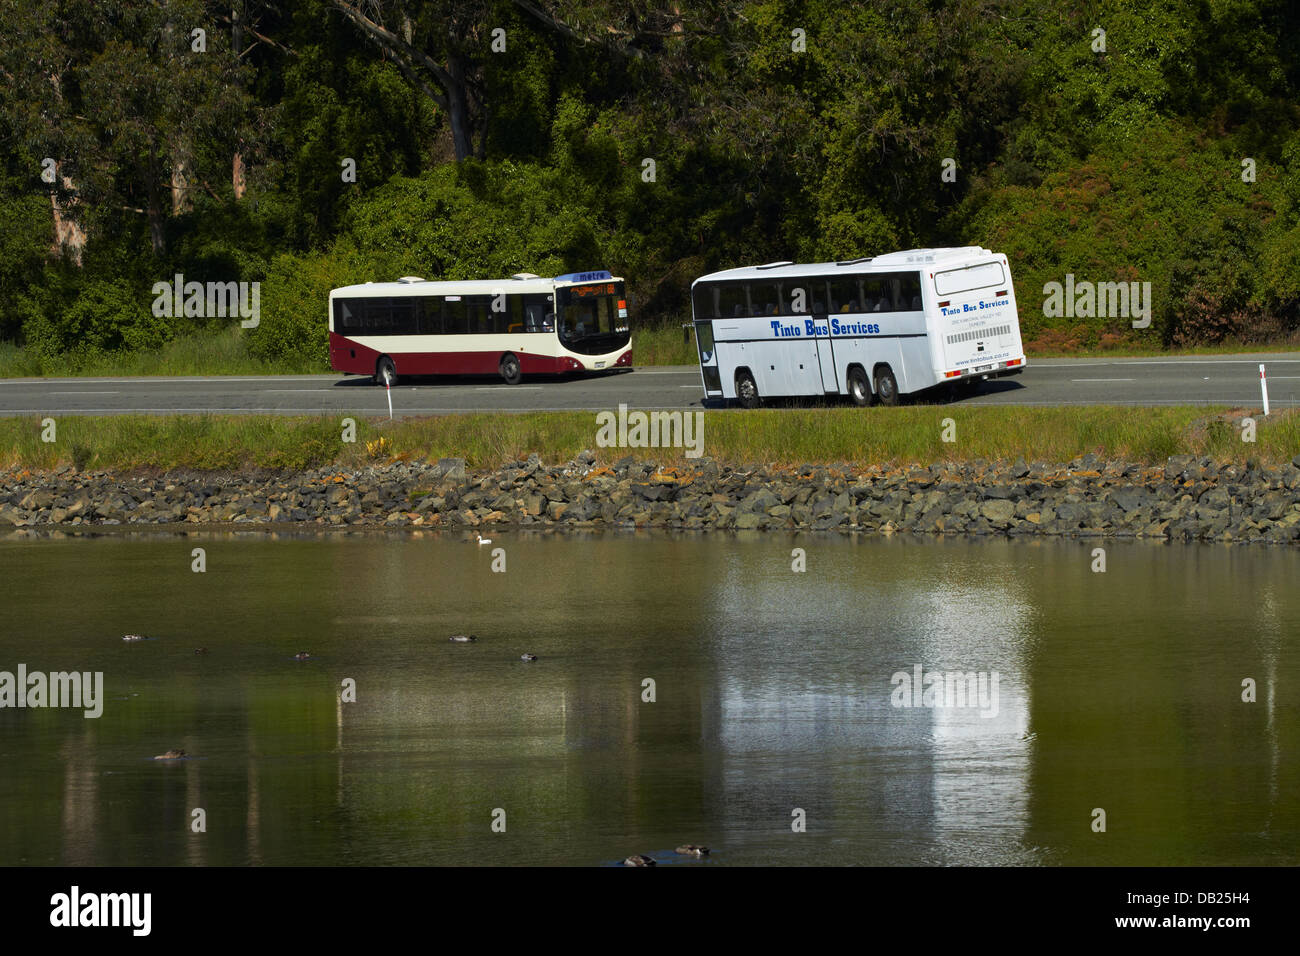 Buses beside Otago Harbour near Port Chalmers, Dunedin, Otago, South Island, New Zealand - Stock Image